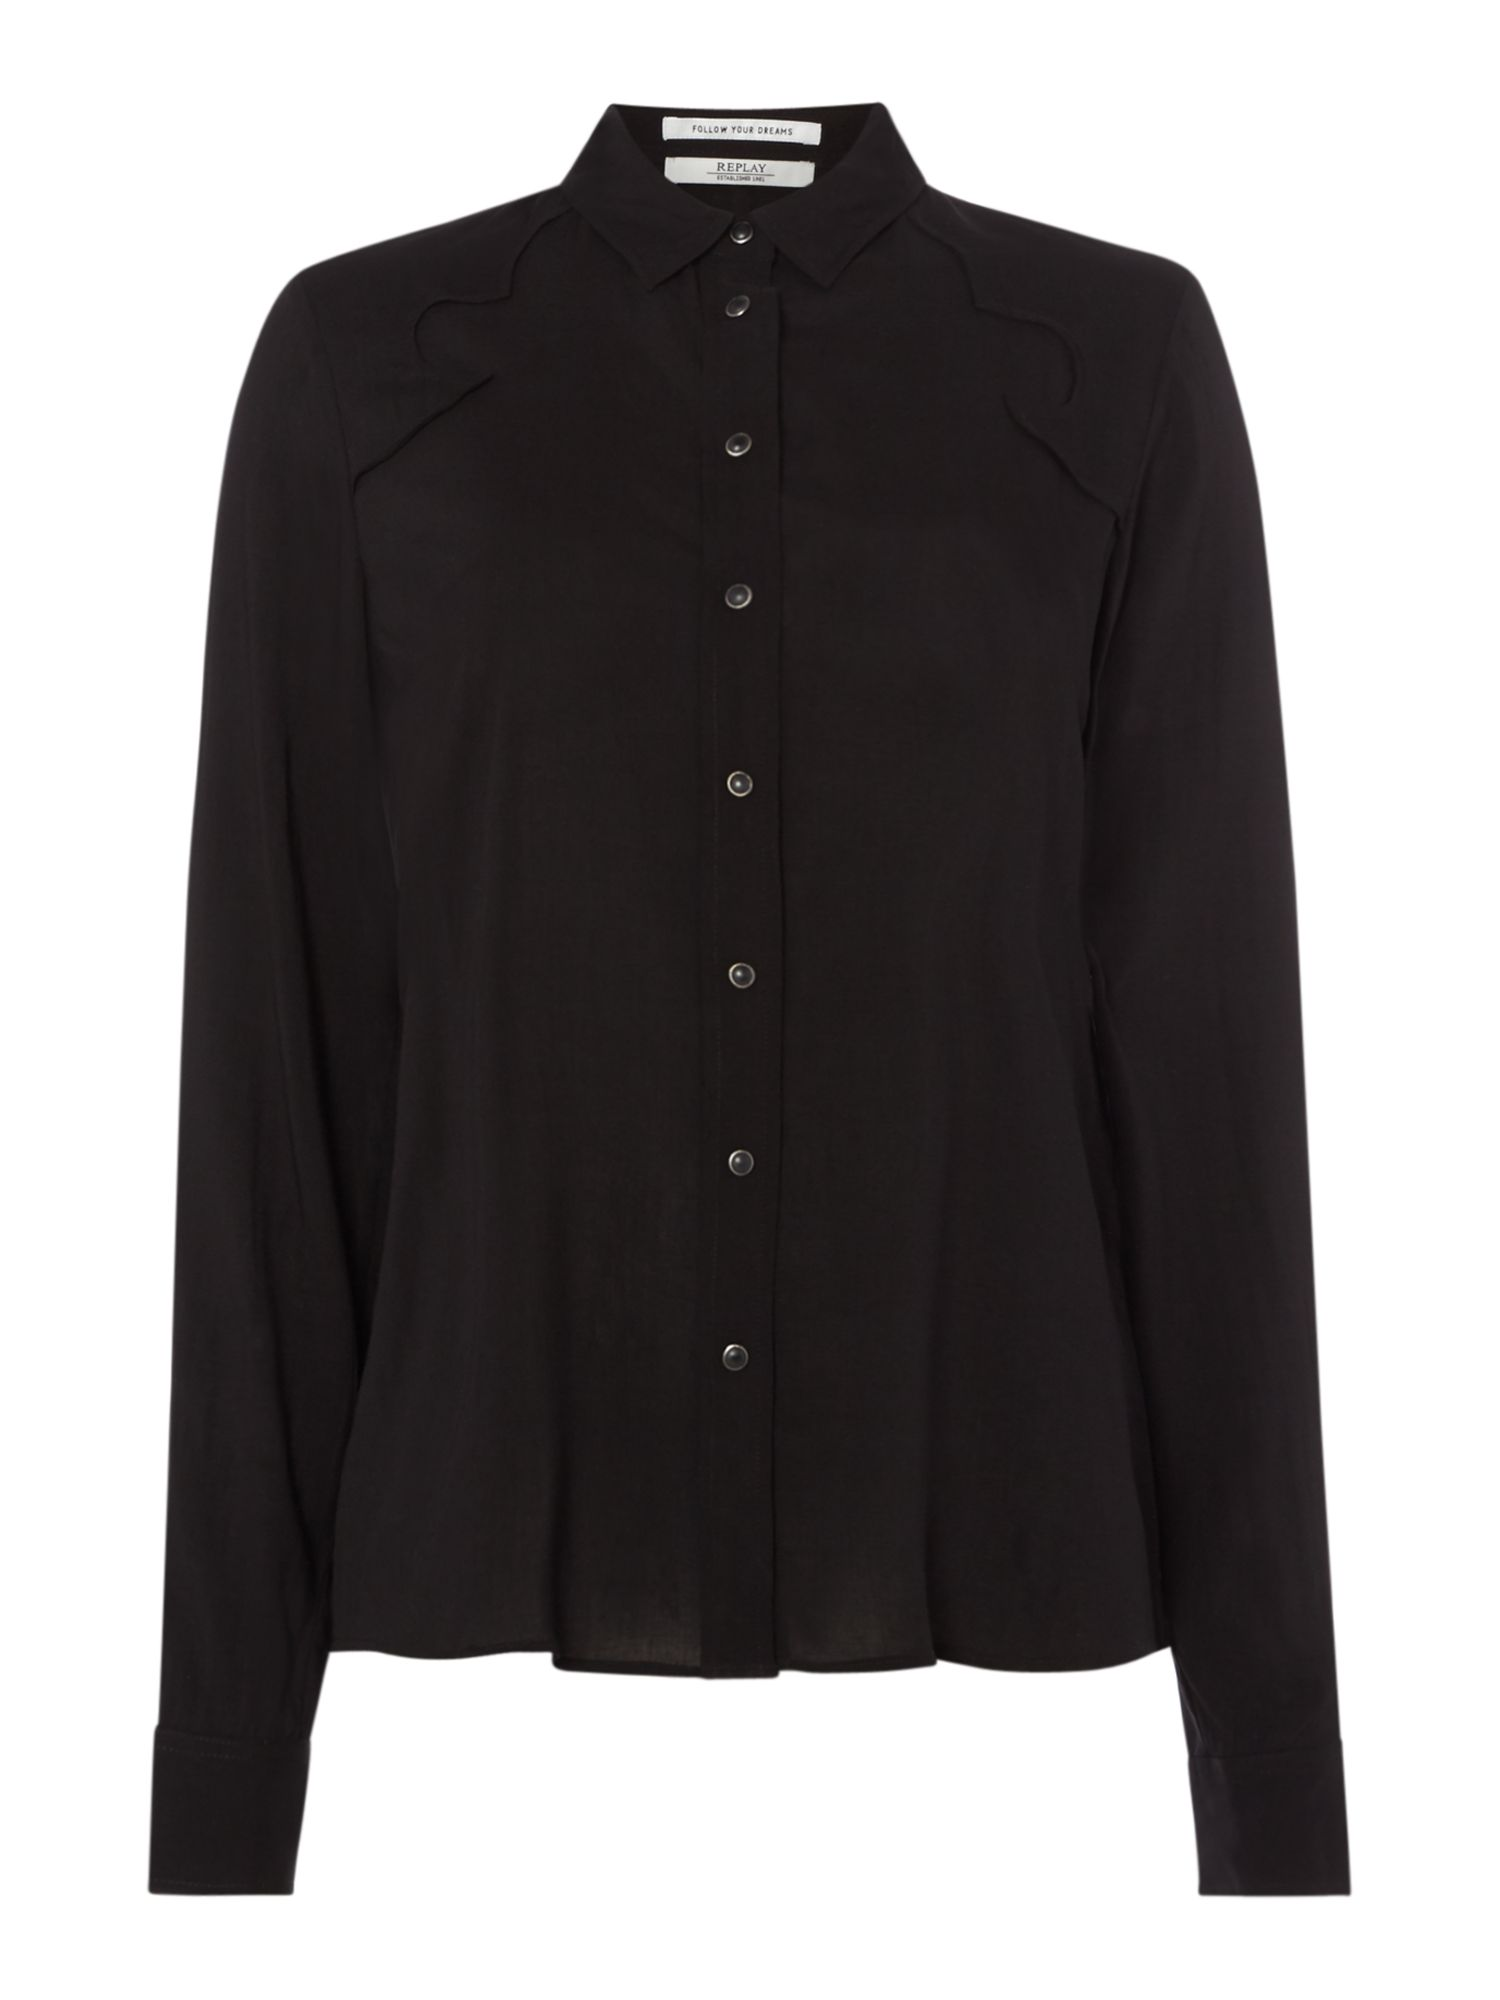 Replay Viscose Shirt, Black